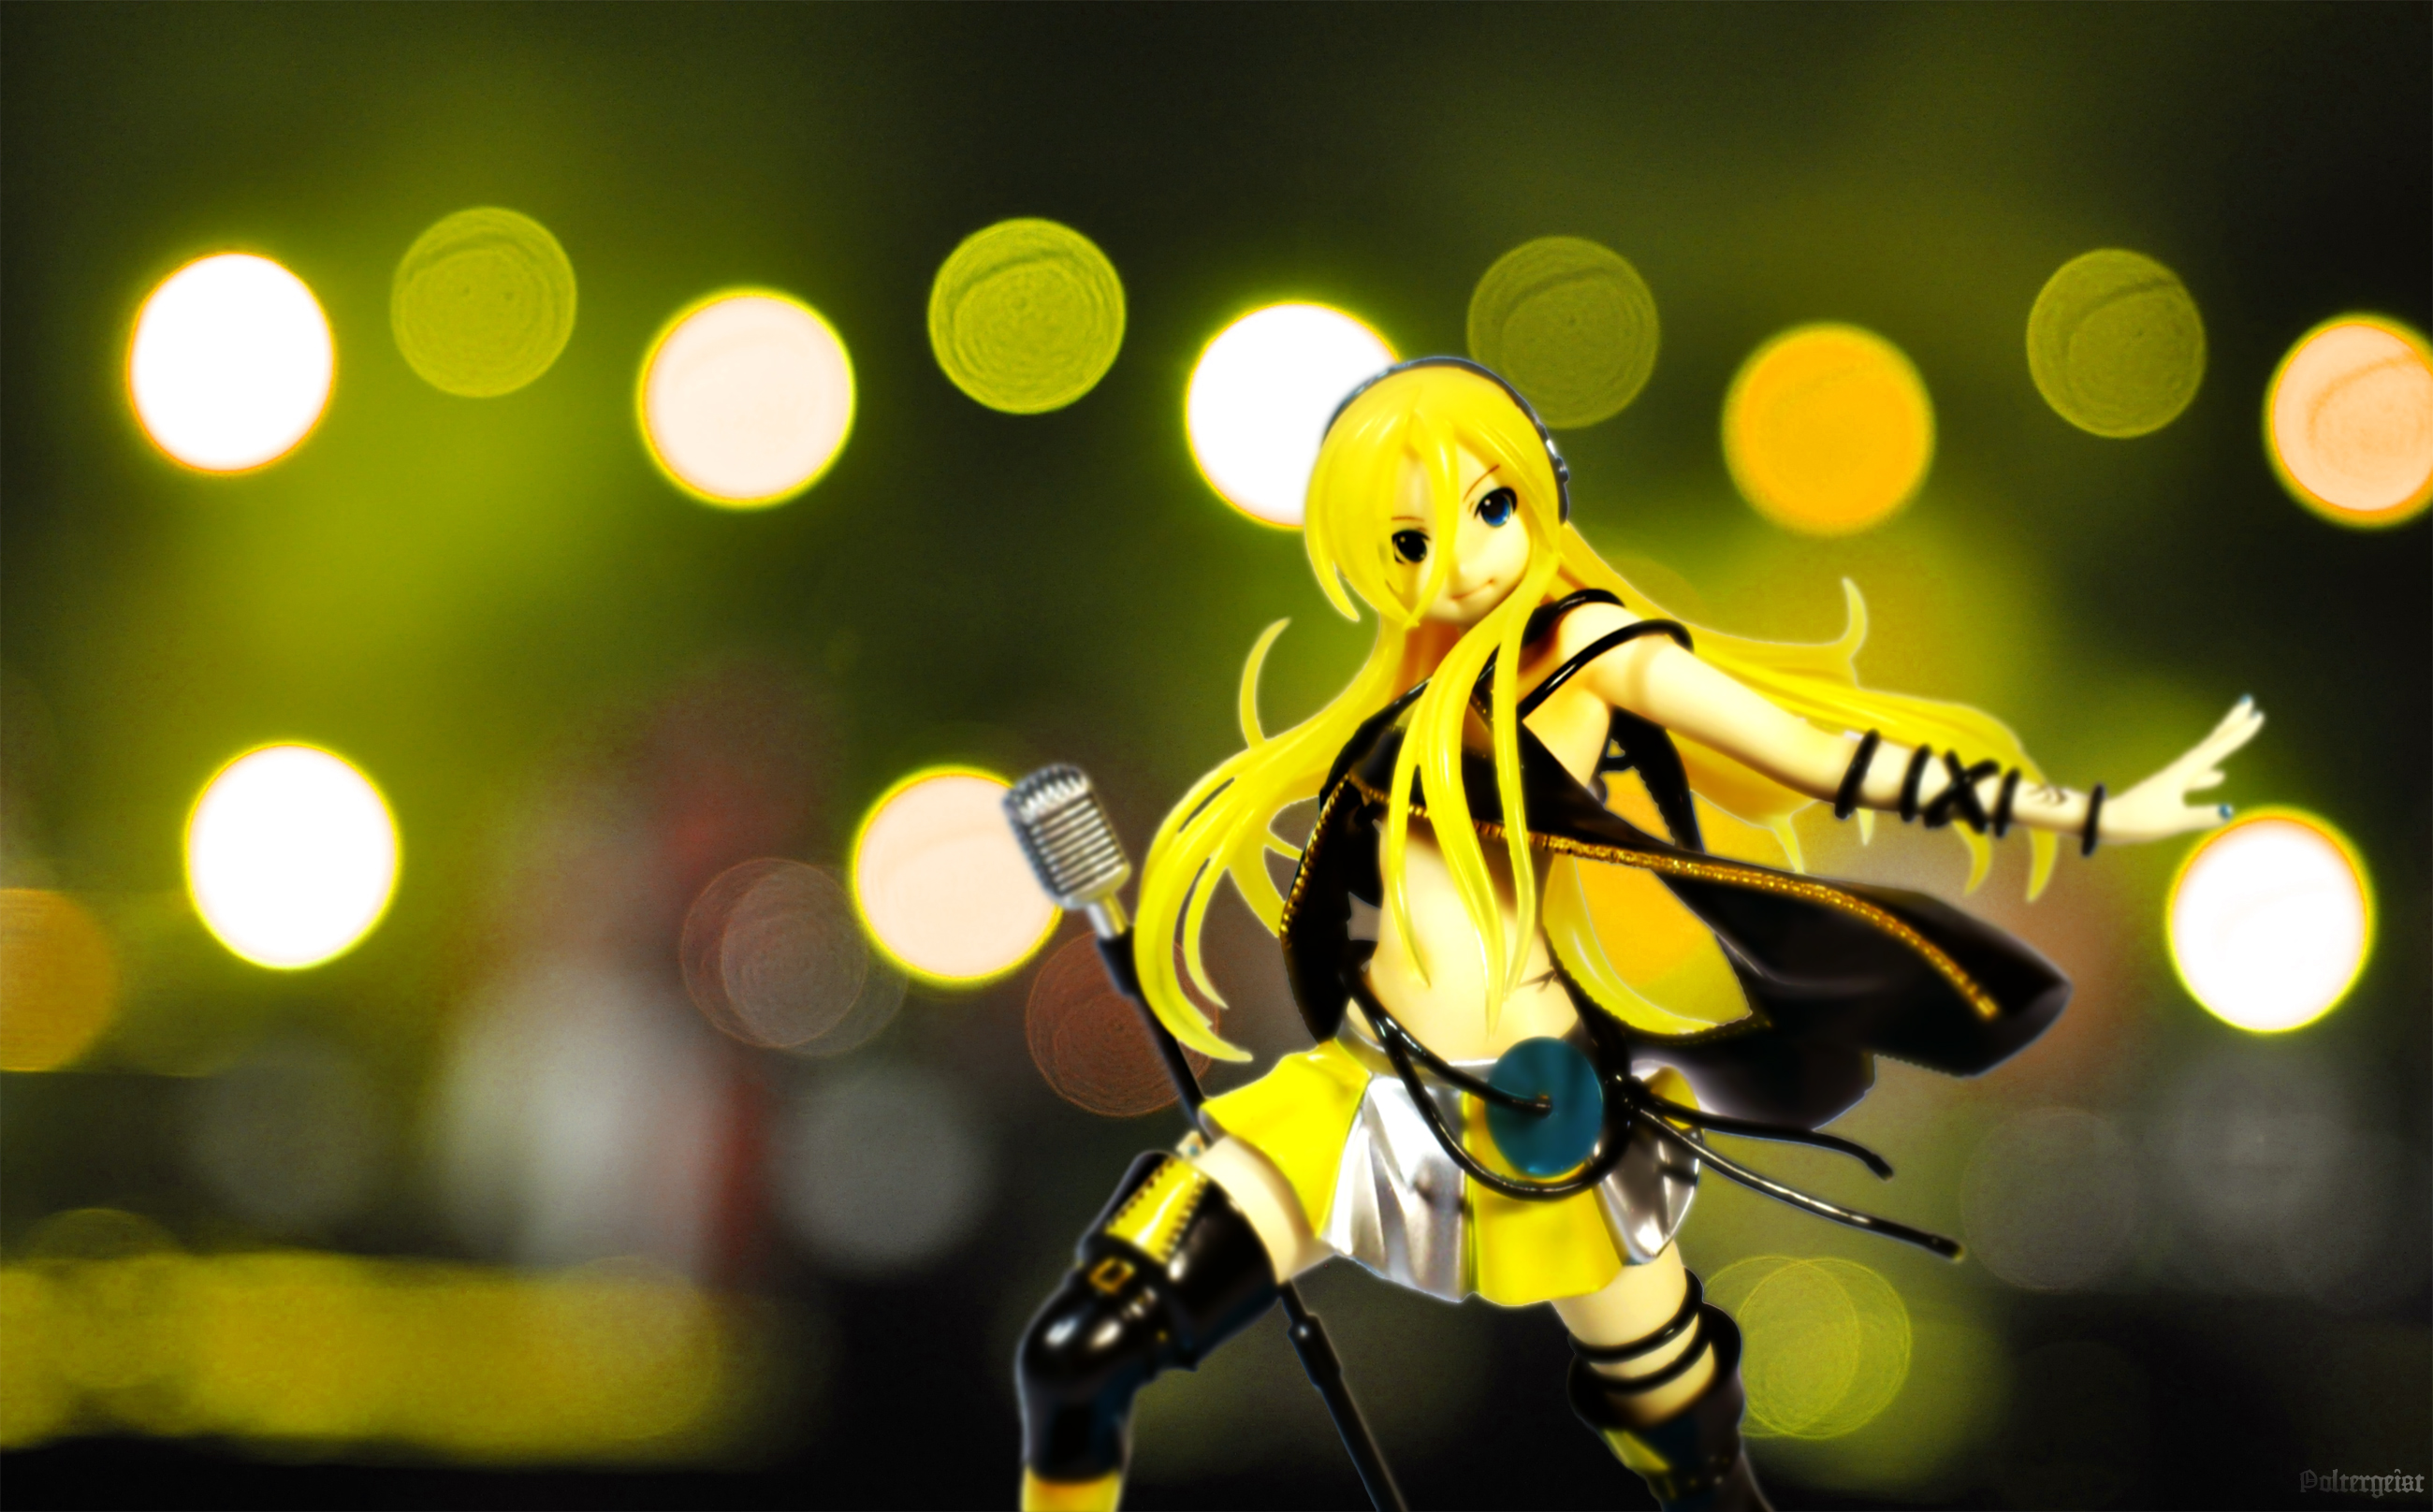 blond_hair vocaloid blue_eyes boots good_smile_company yoshi lily phat_company